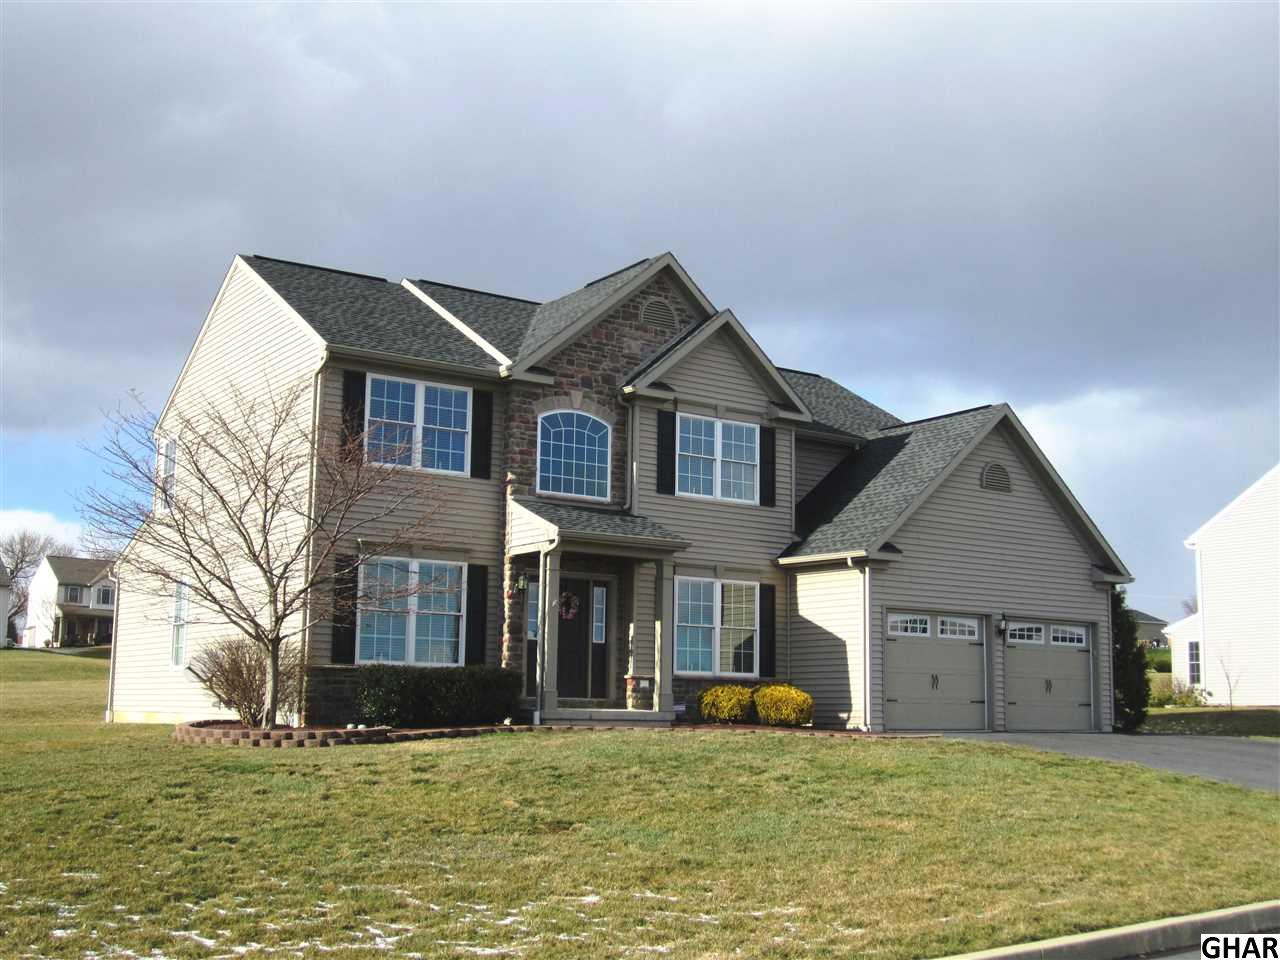 250 Crimson Ct, Lebanon, PA 17042